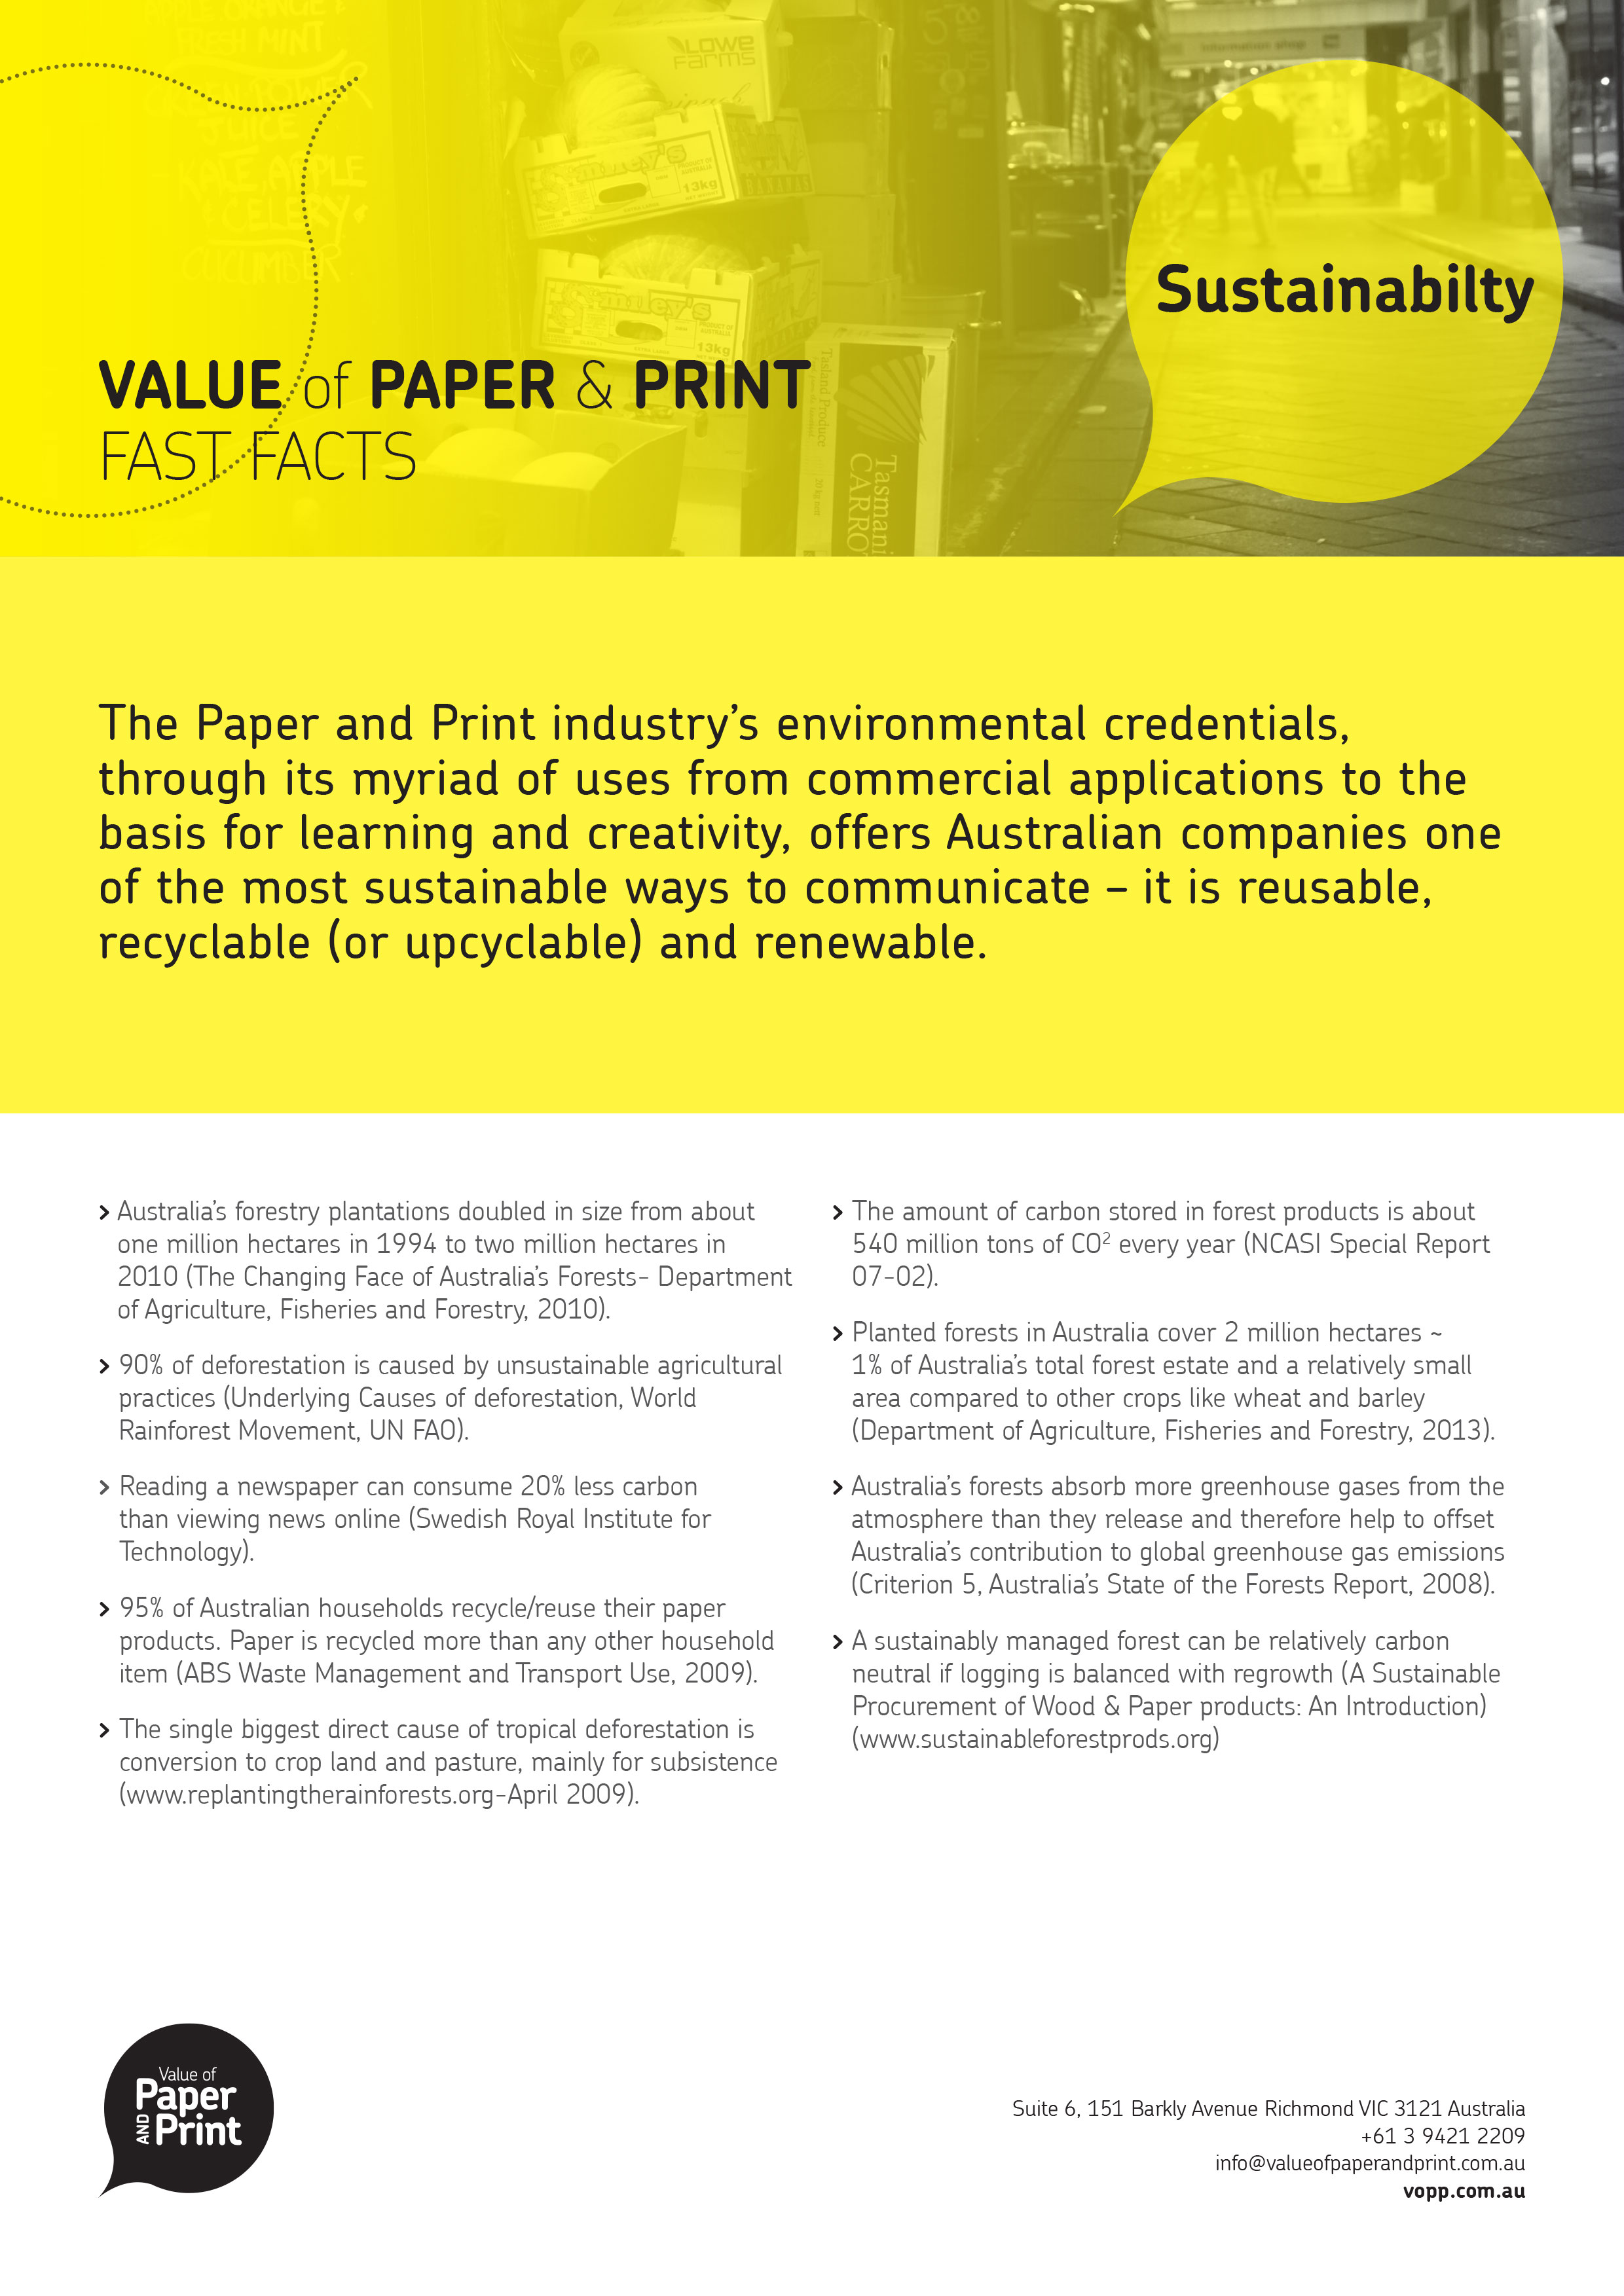 Value of paper & print - Fast Facts